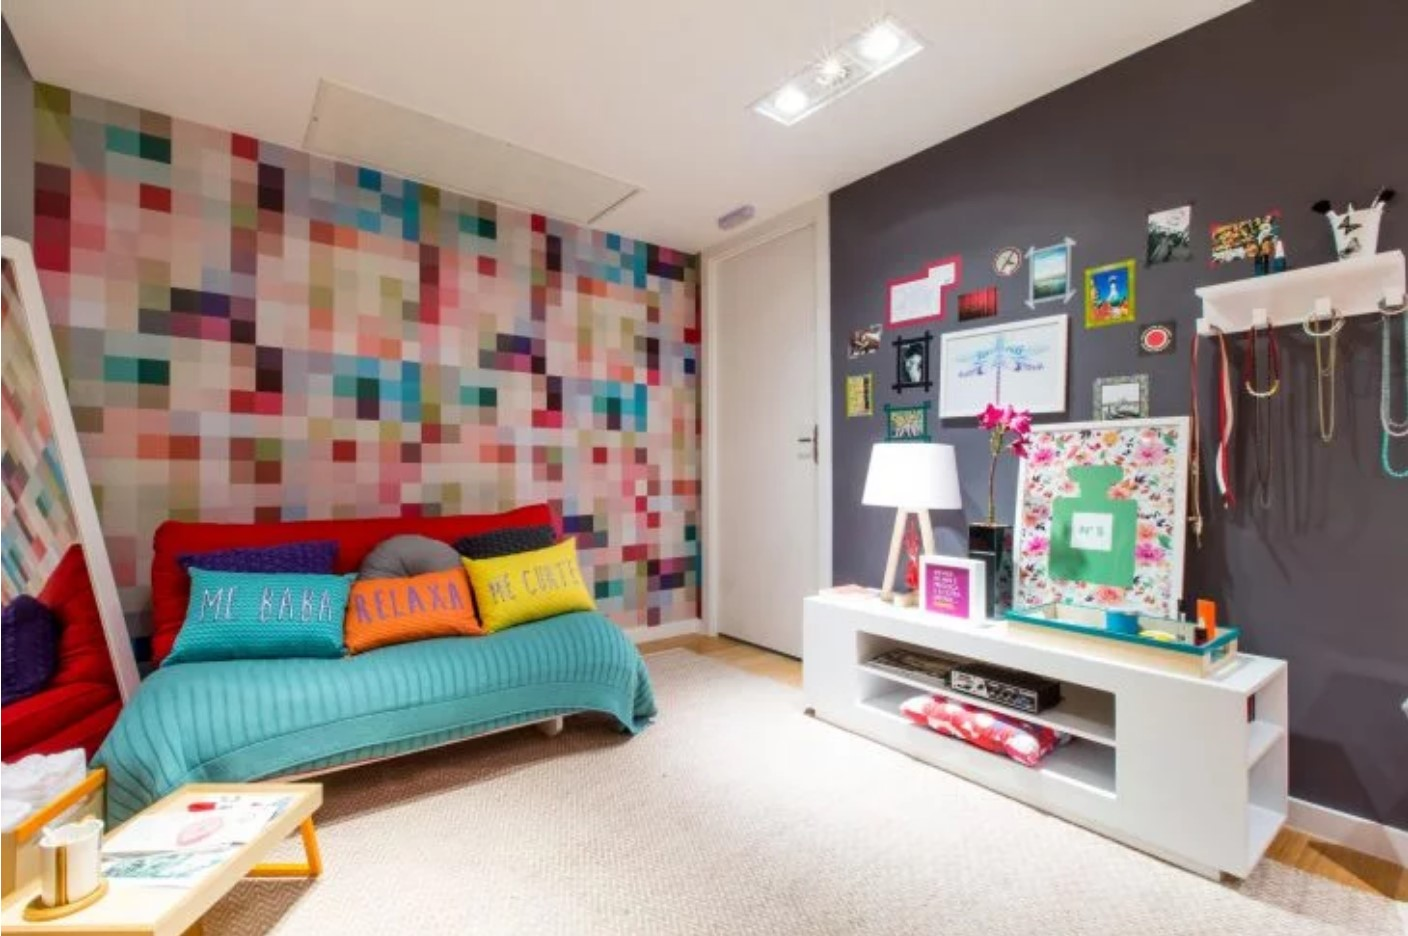 Bedroom with pixelated wall